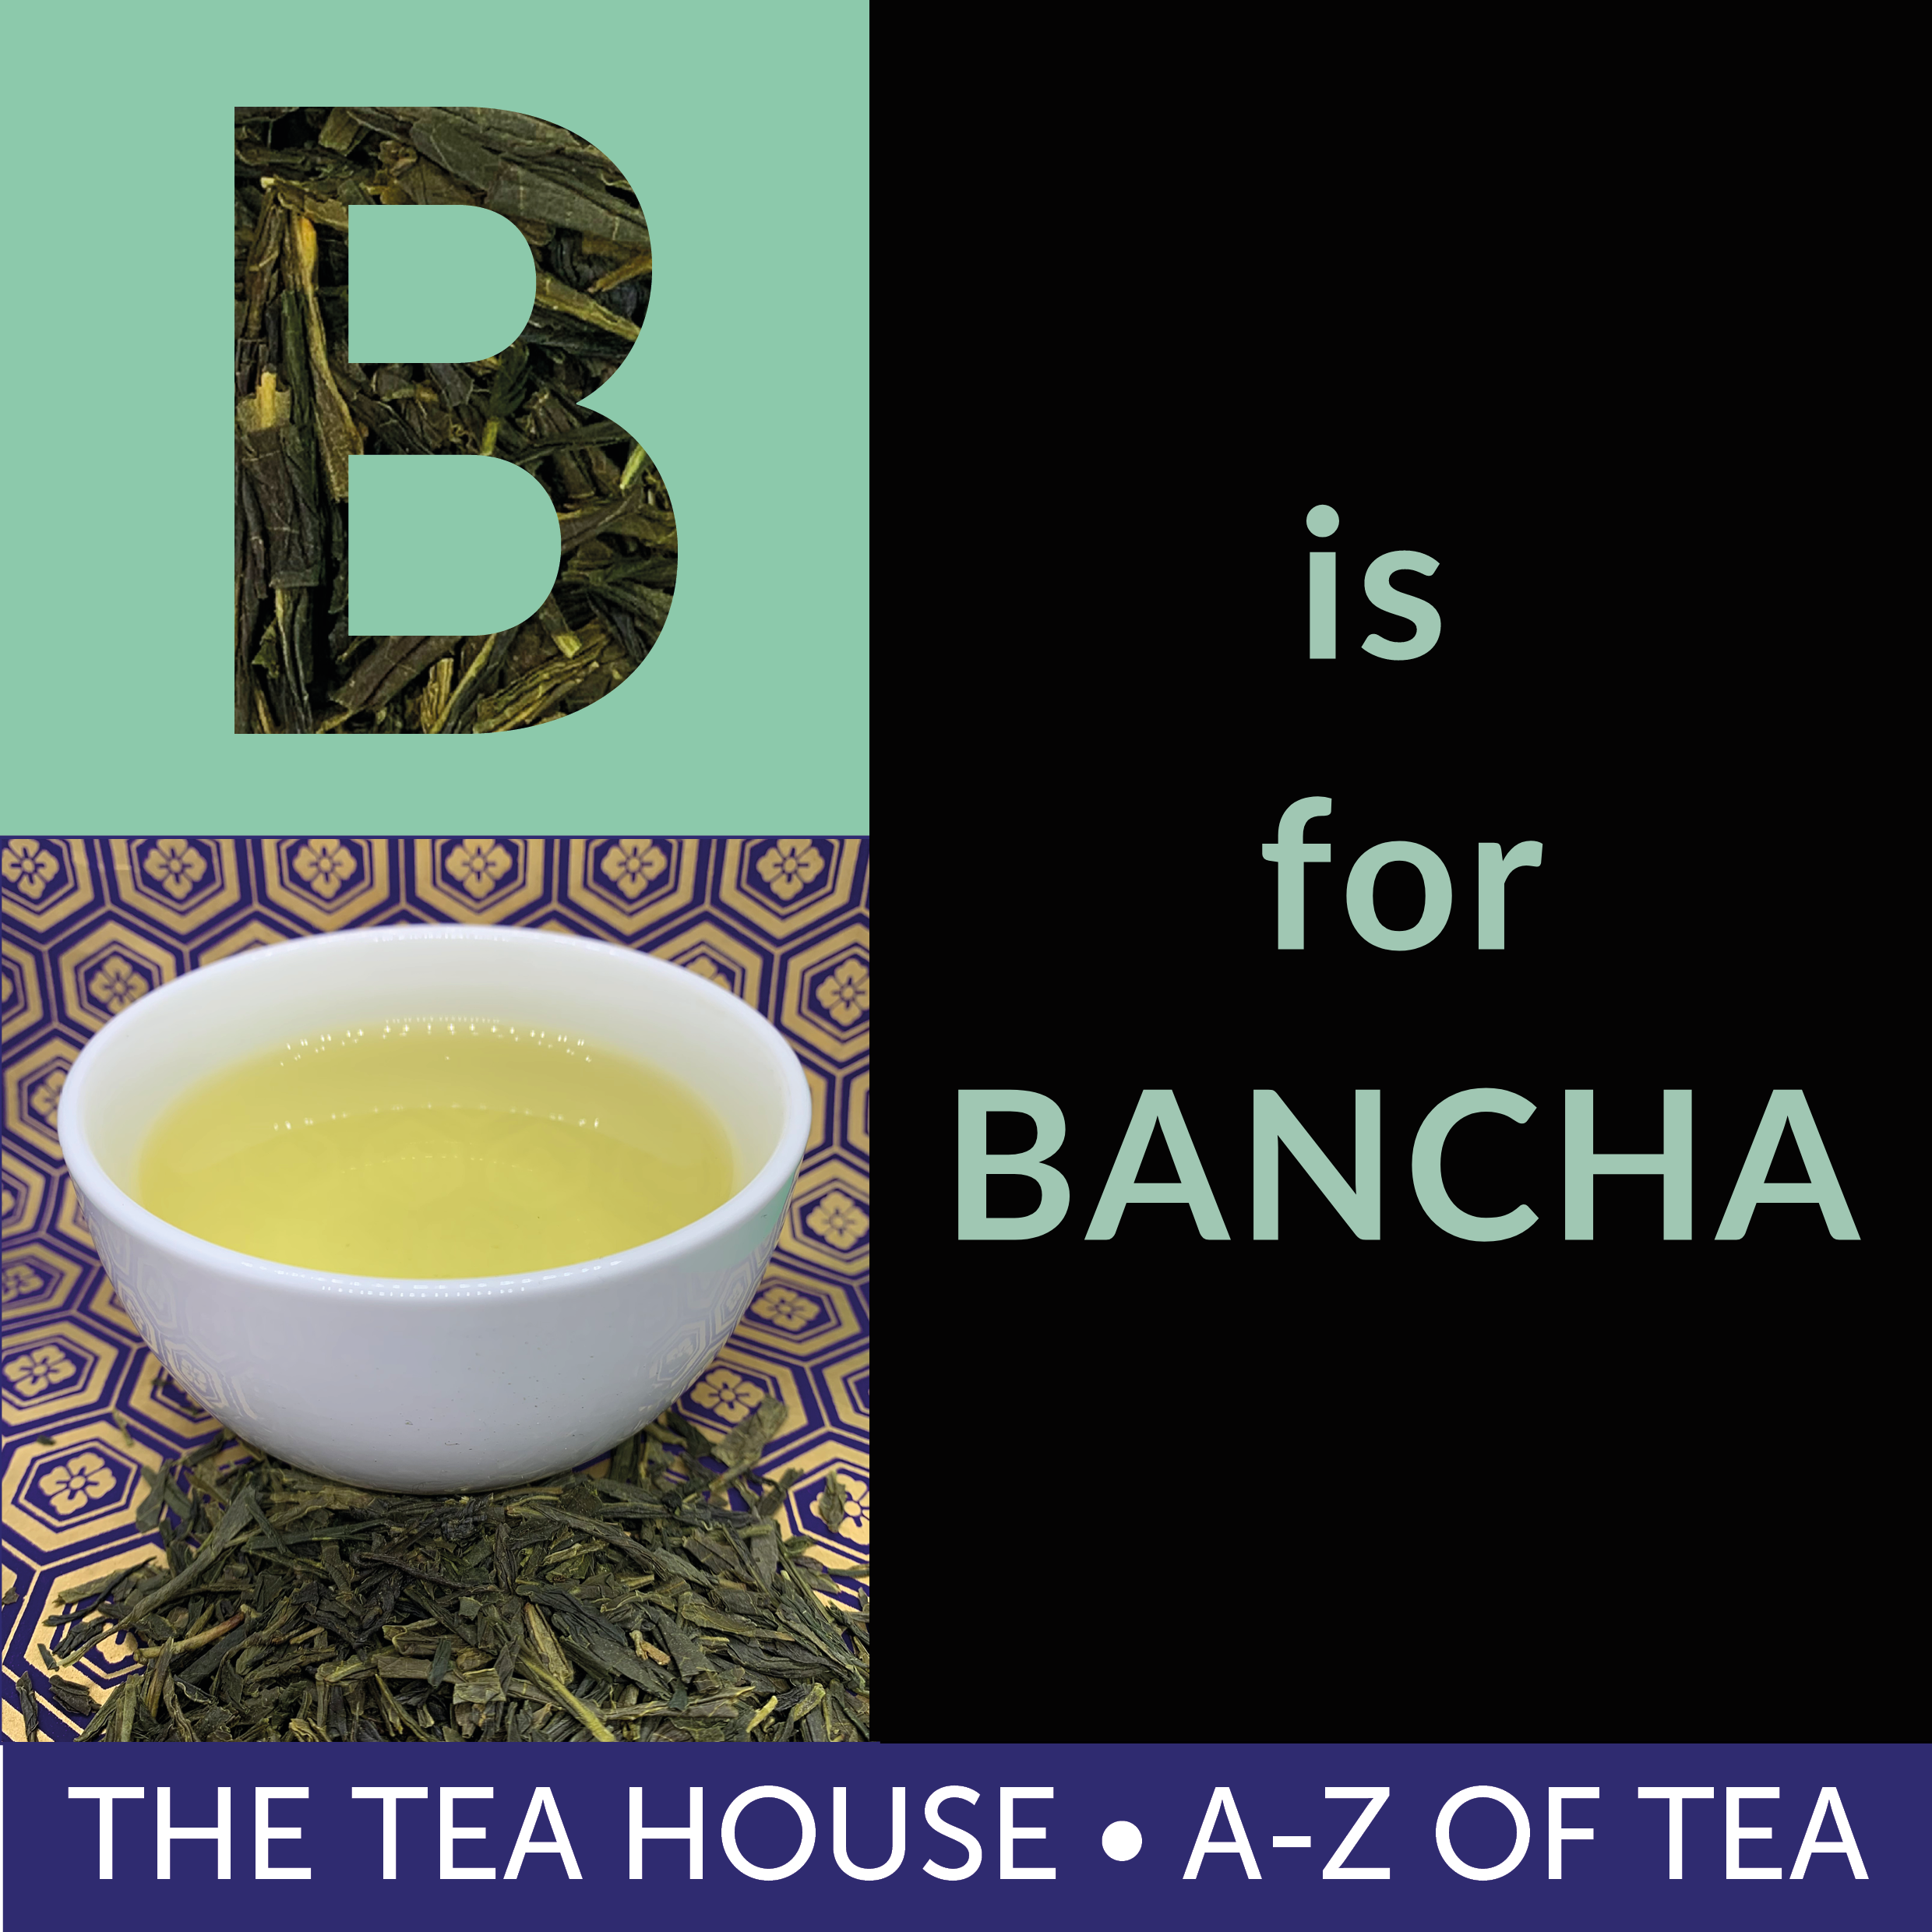 B is for Bancha